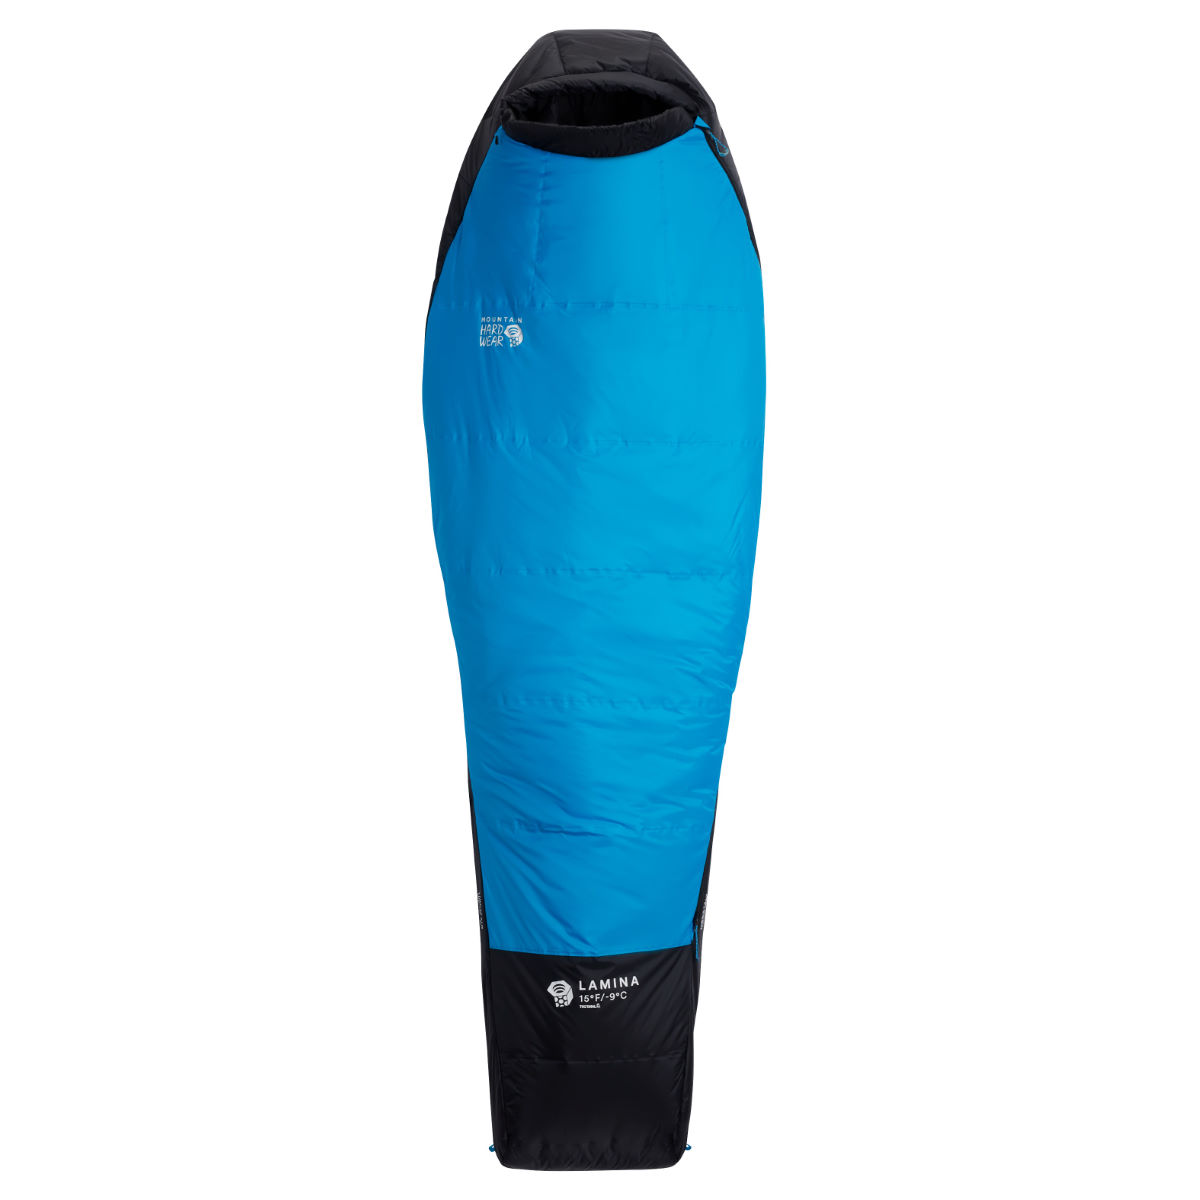 Mountain Hardwear Mountain Hardwear Lamina 30F/-1C Reg Sleeping Bag   Sleeping Bags